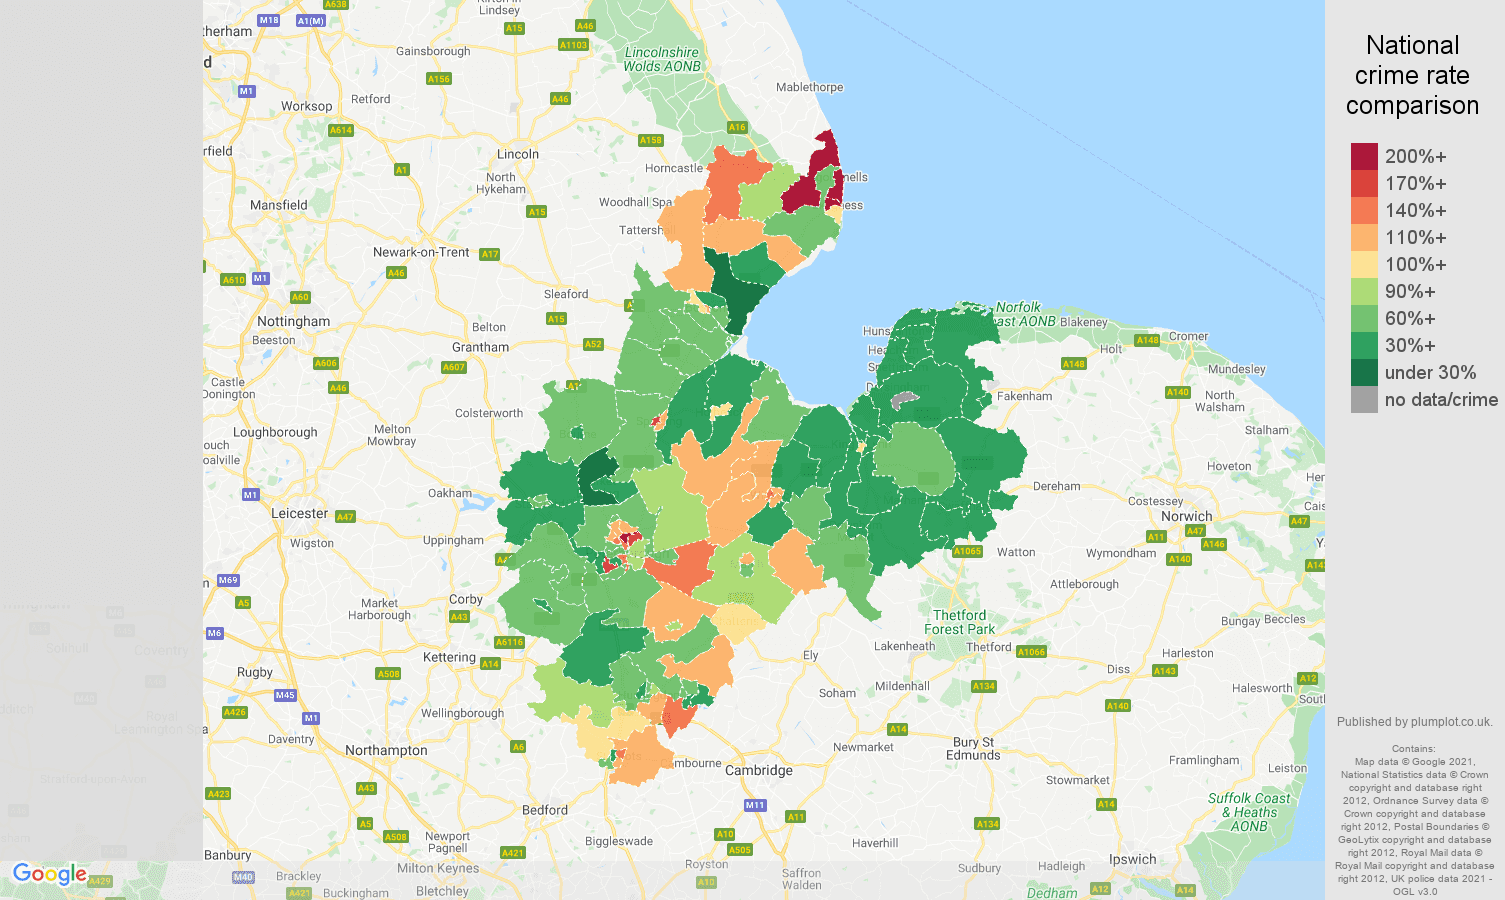 Peterborough burglary crime rate comparison map